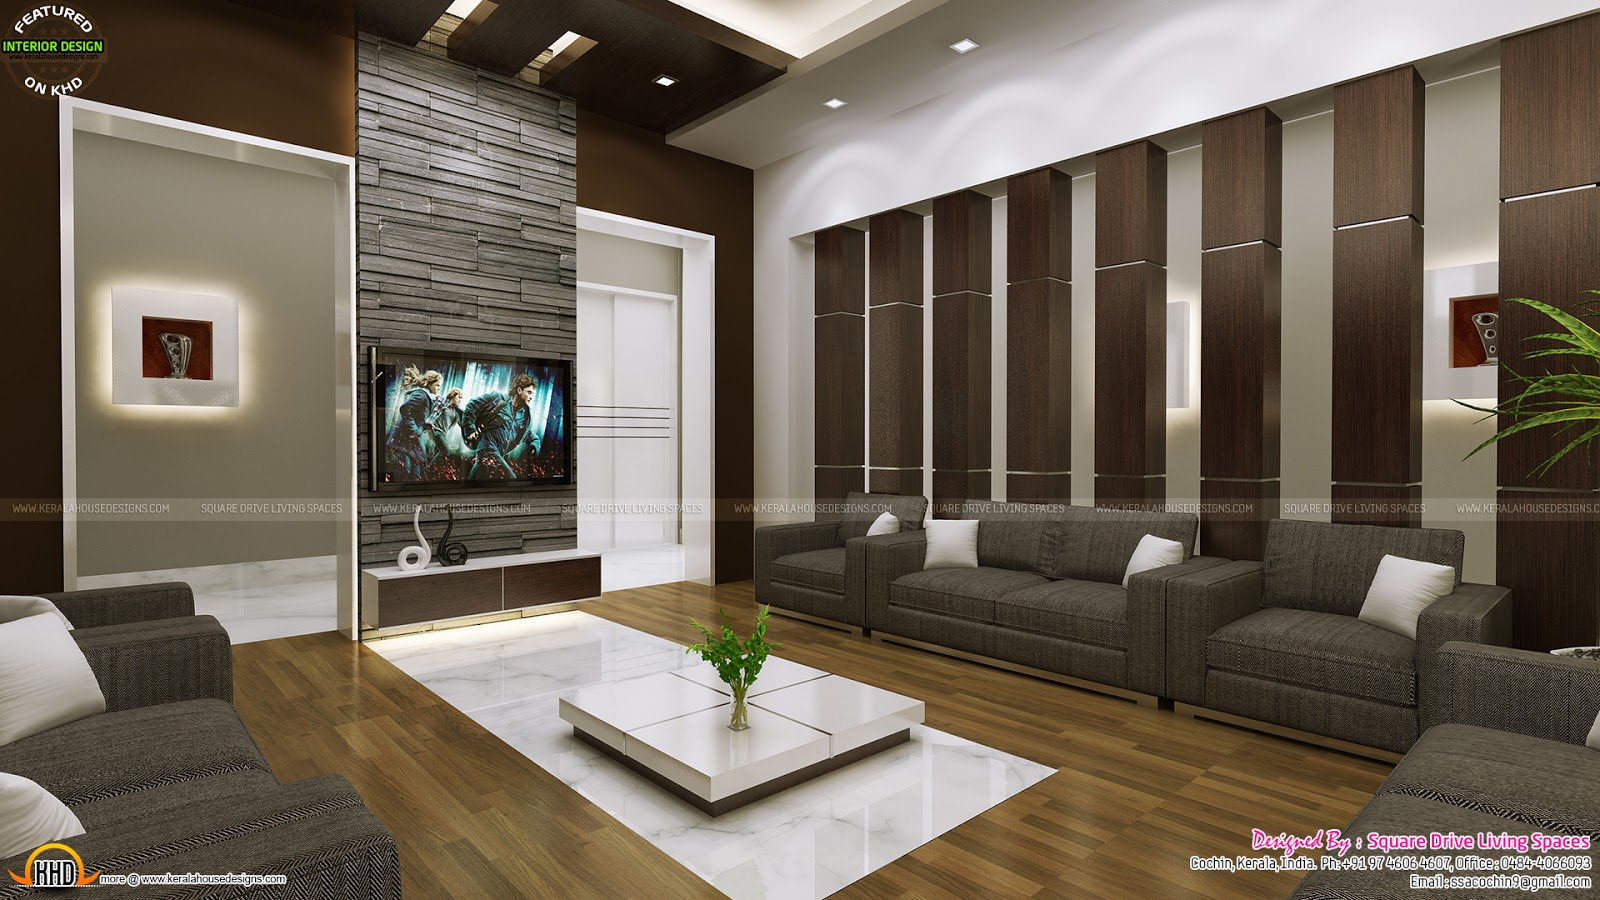 Attractive home interior ideas kerala home design and for House designs interior